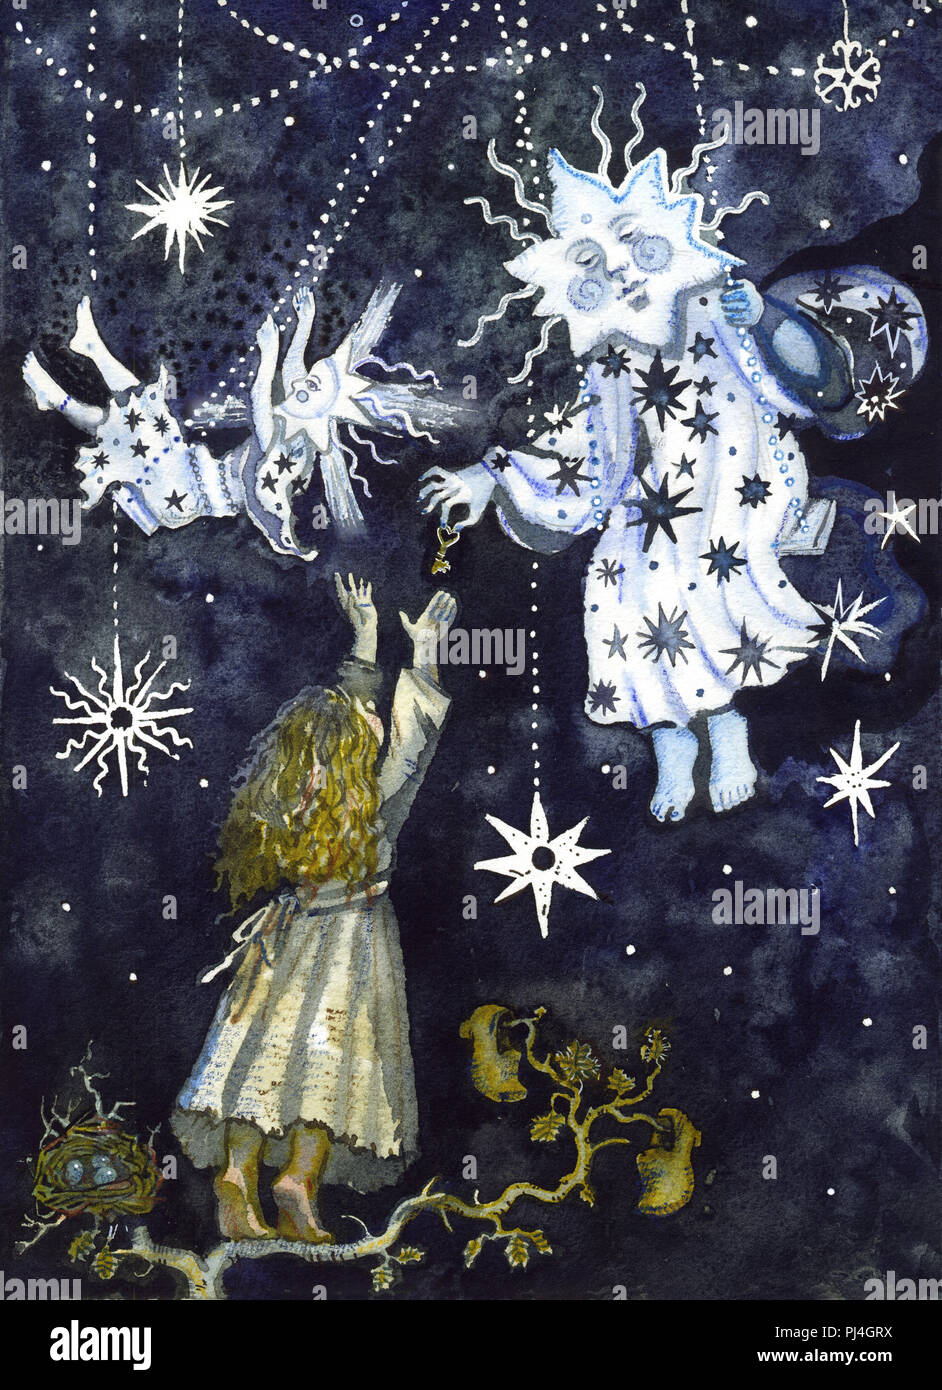 Dialogue with the stars. Little girl gets the key from the magical star creatures. Night sky background. Fairy tale fantasy illustration. For children, Christmas, New Year greeting card, board games. - Stock Image